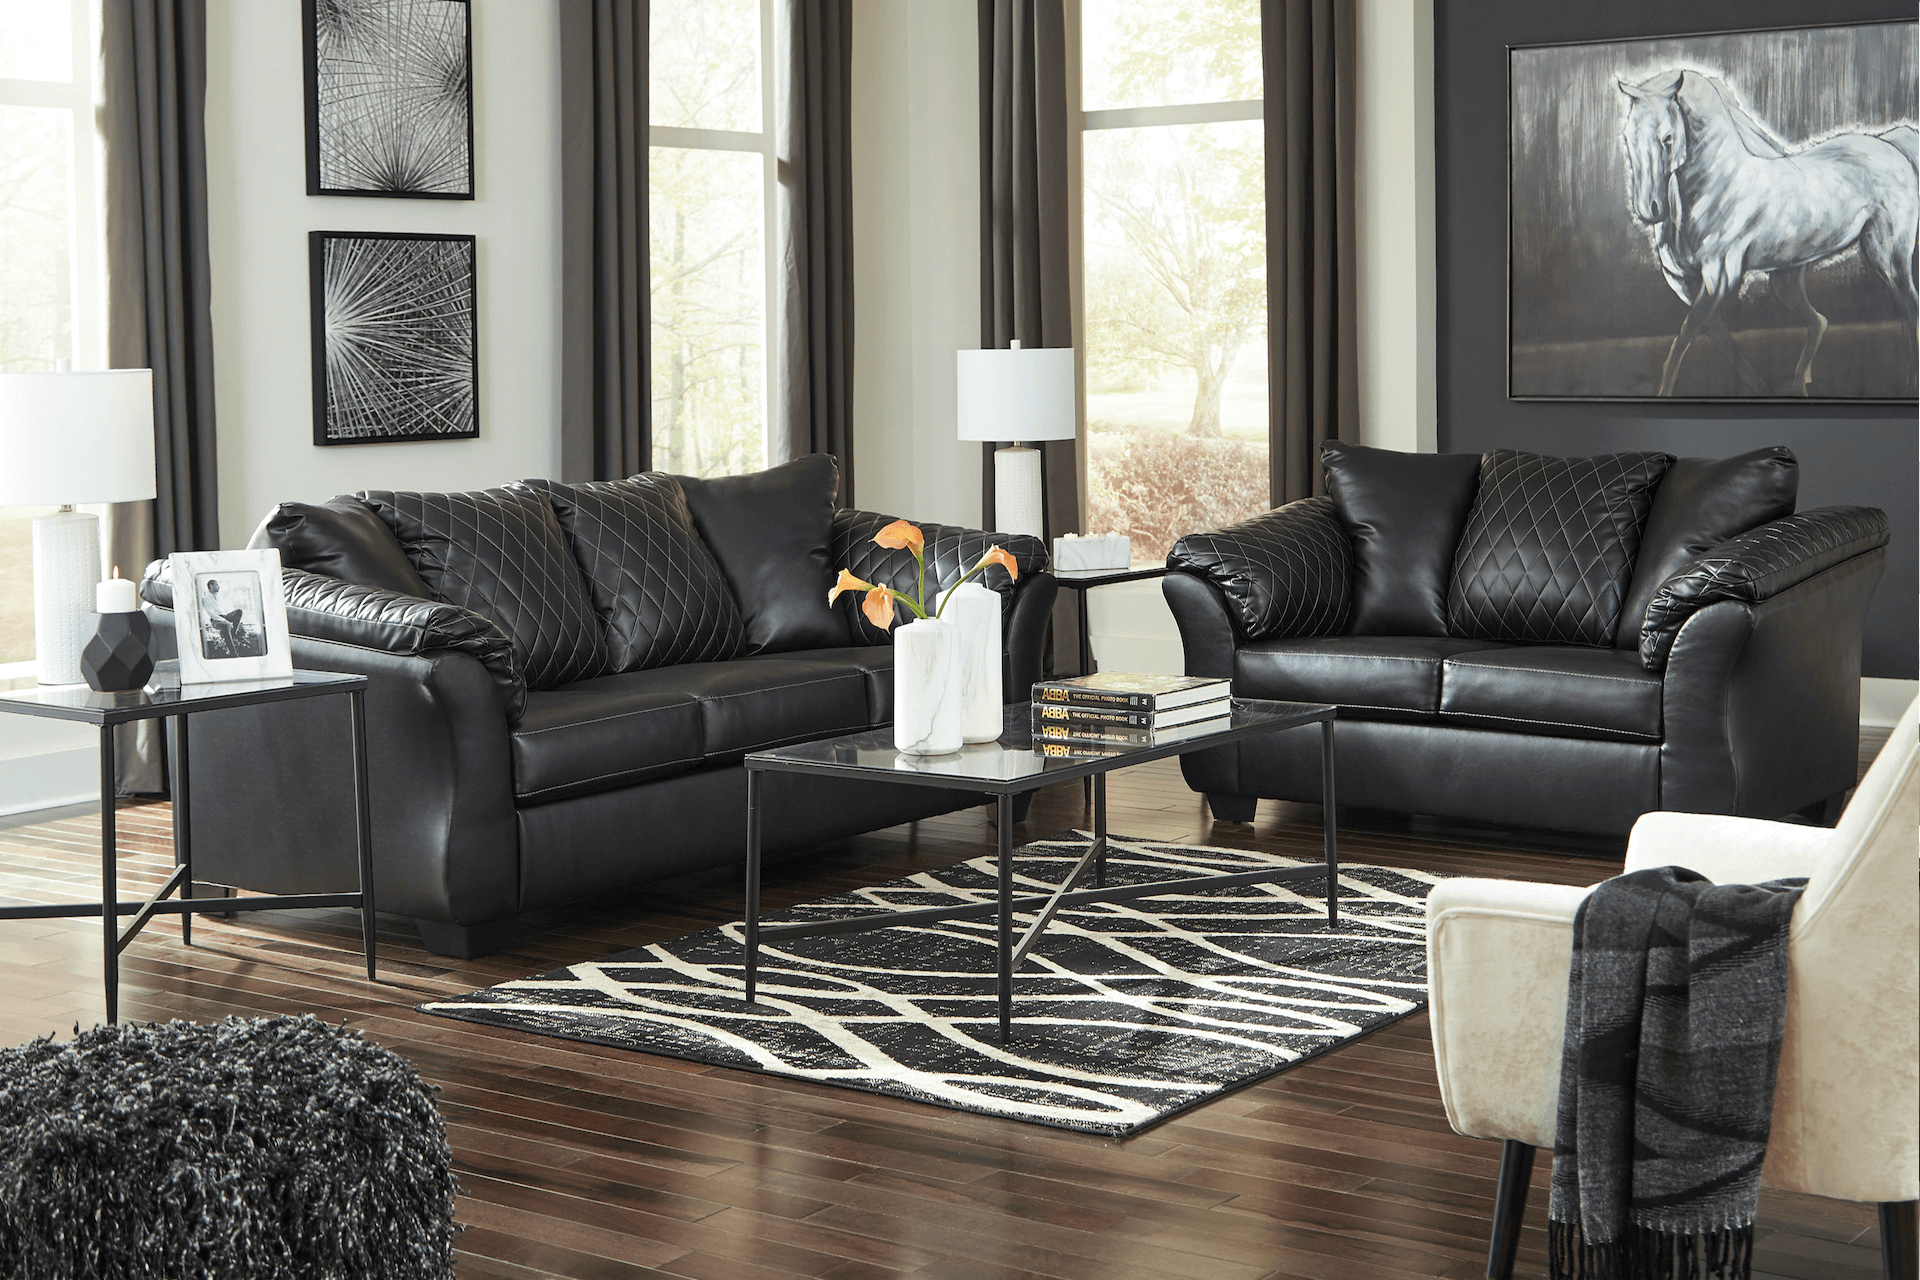 Atlantic_Furniture-Sofa_Sets-40502_T003_hi-res